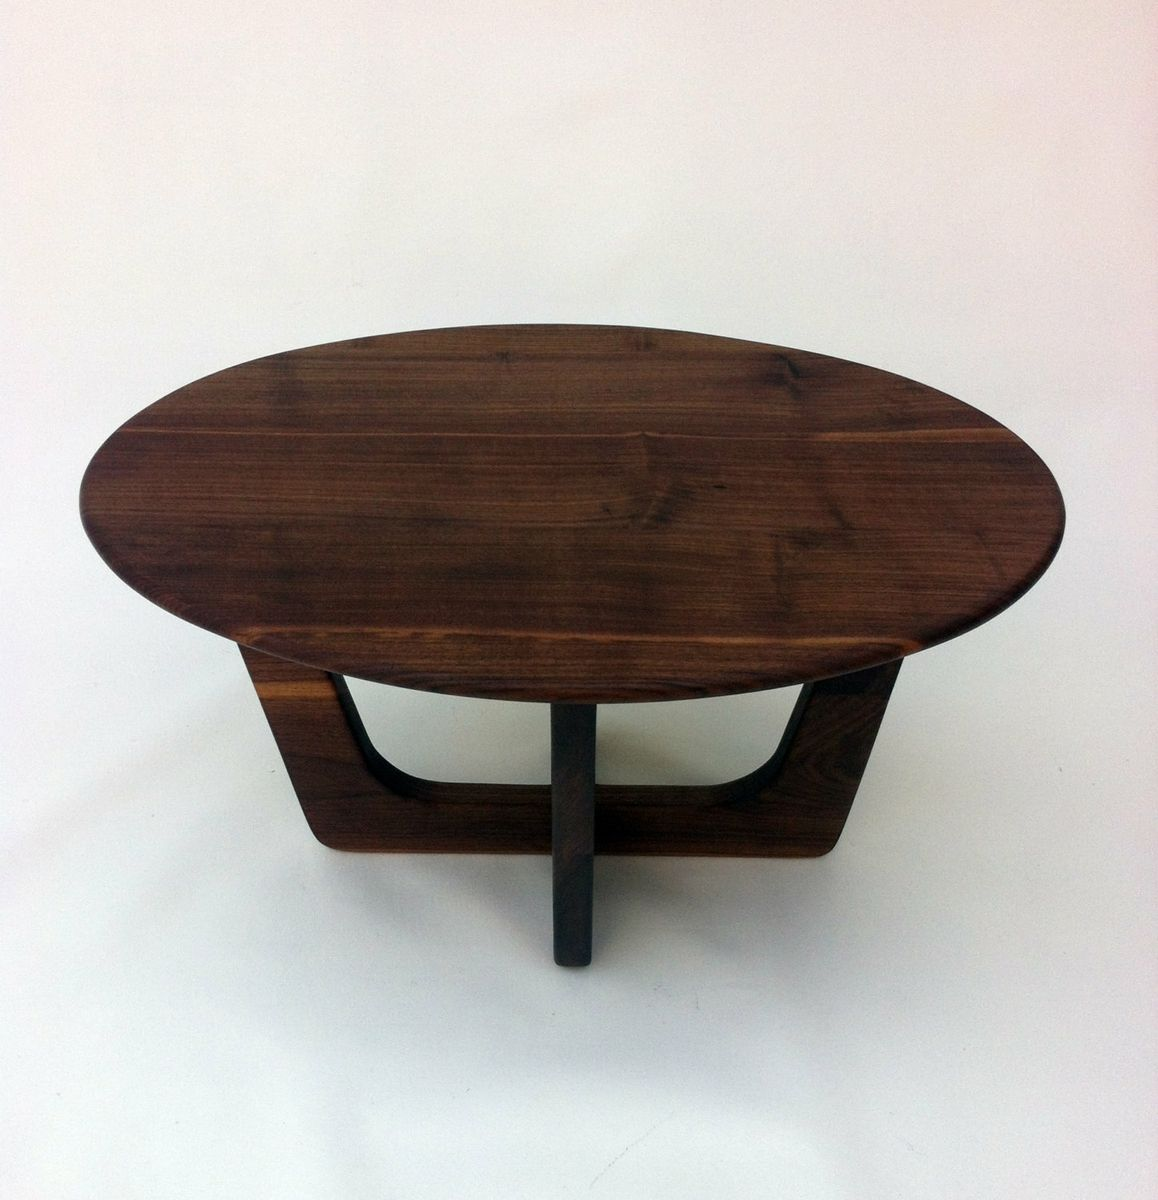 Buy A Hand Made Coffee Cocktail Table Made From Solid Walnut In Atomic Era Adrian Pearsall